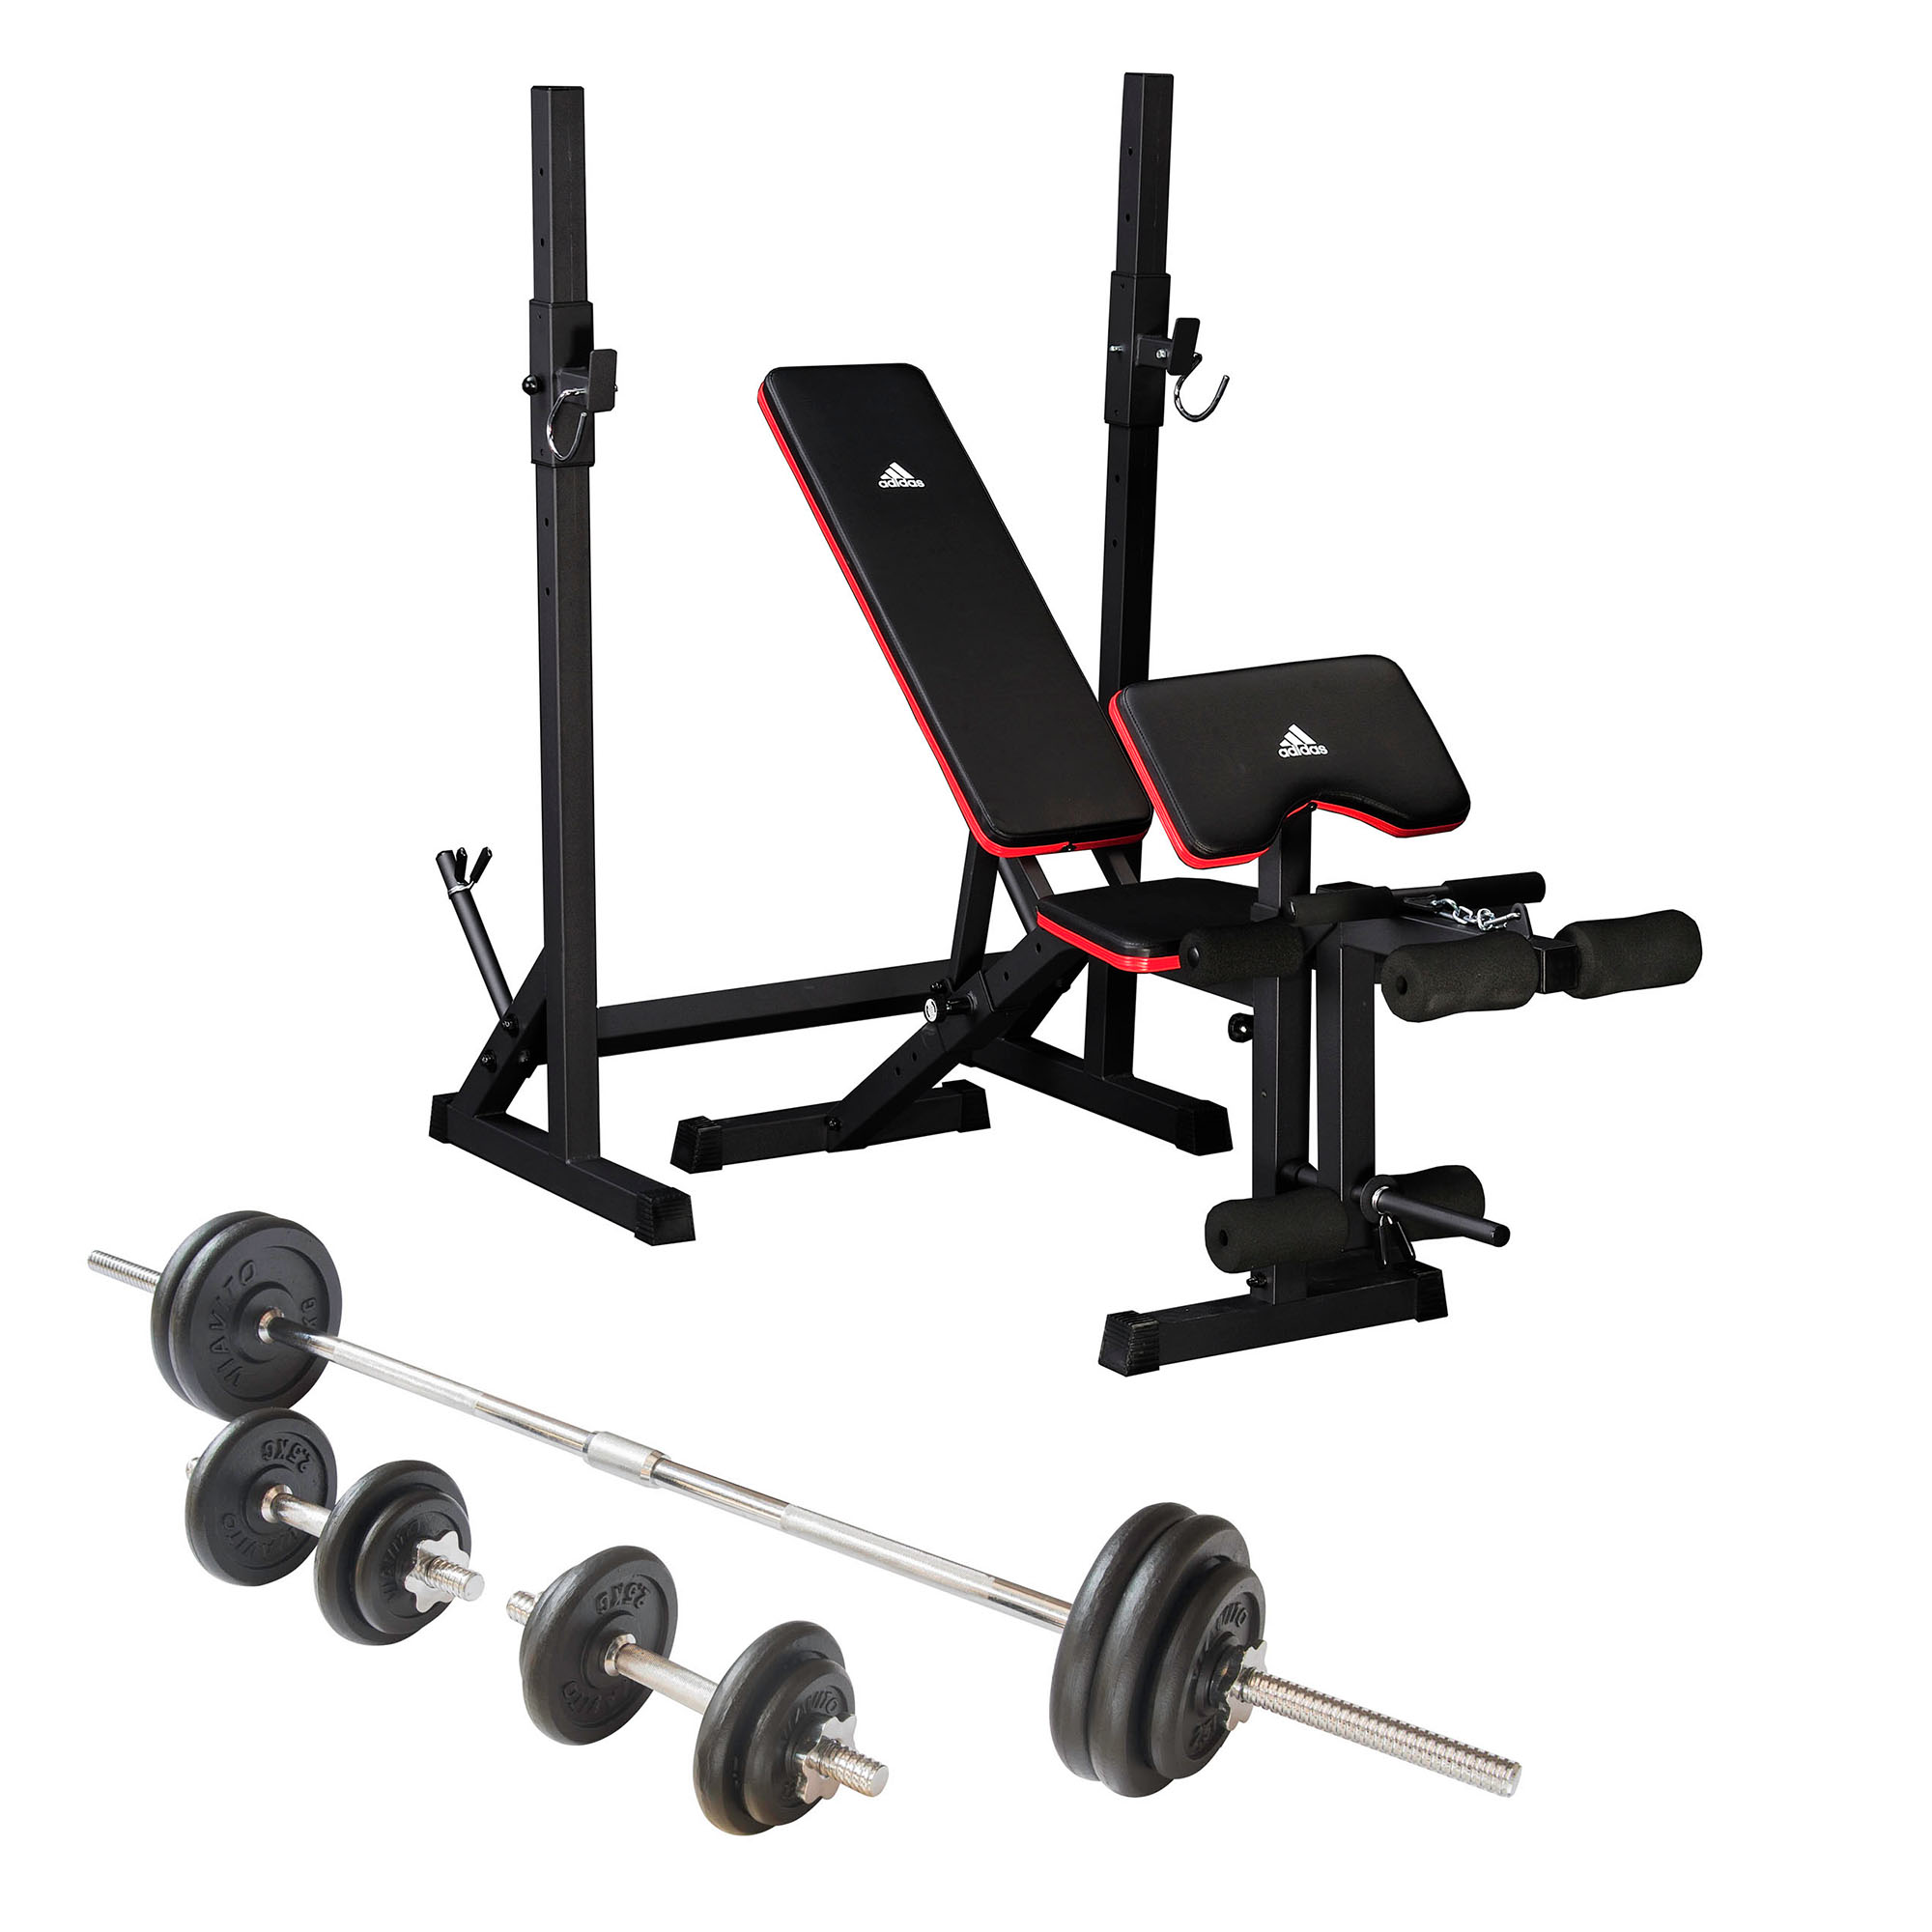 Weider pro 490 dc weight bench Bench and weight set